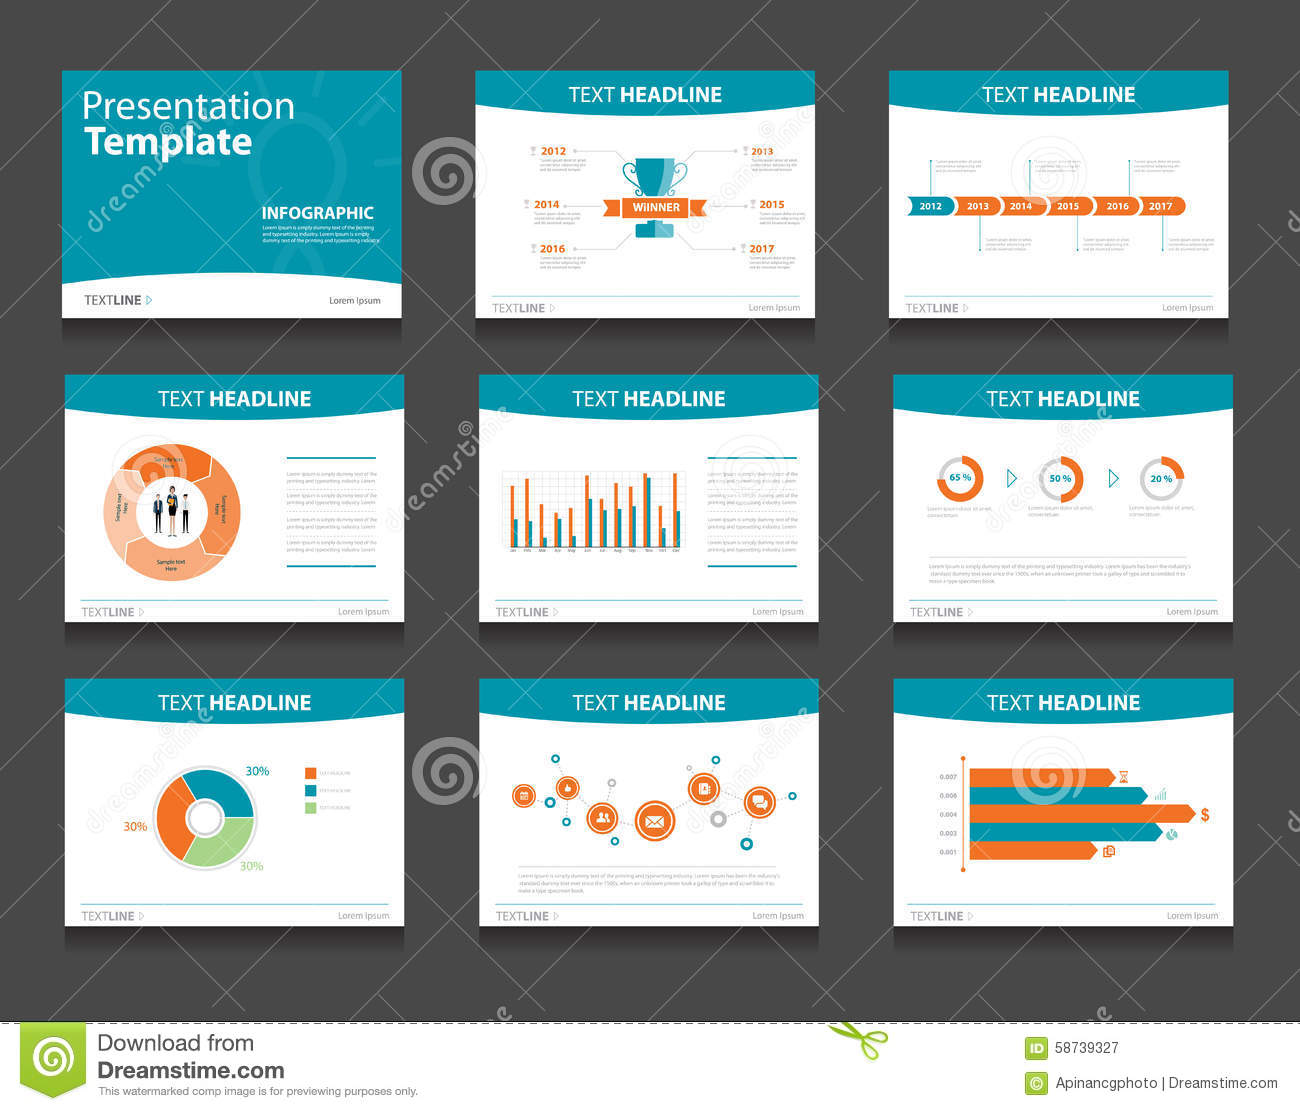 Infographic powerpoint template design backgrounds business infographic powerpoint template design backgrounds business presentation template set cheaphphosting Choice Image